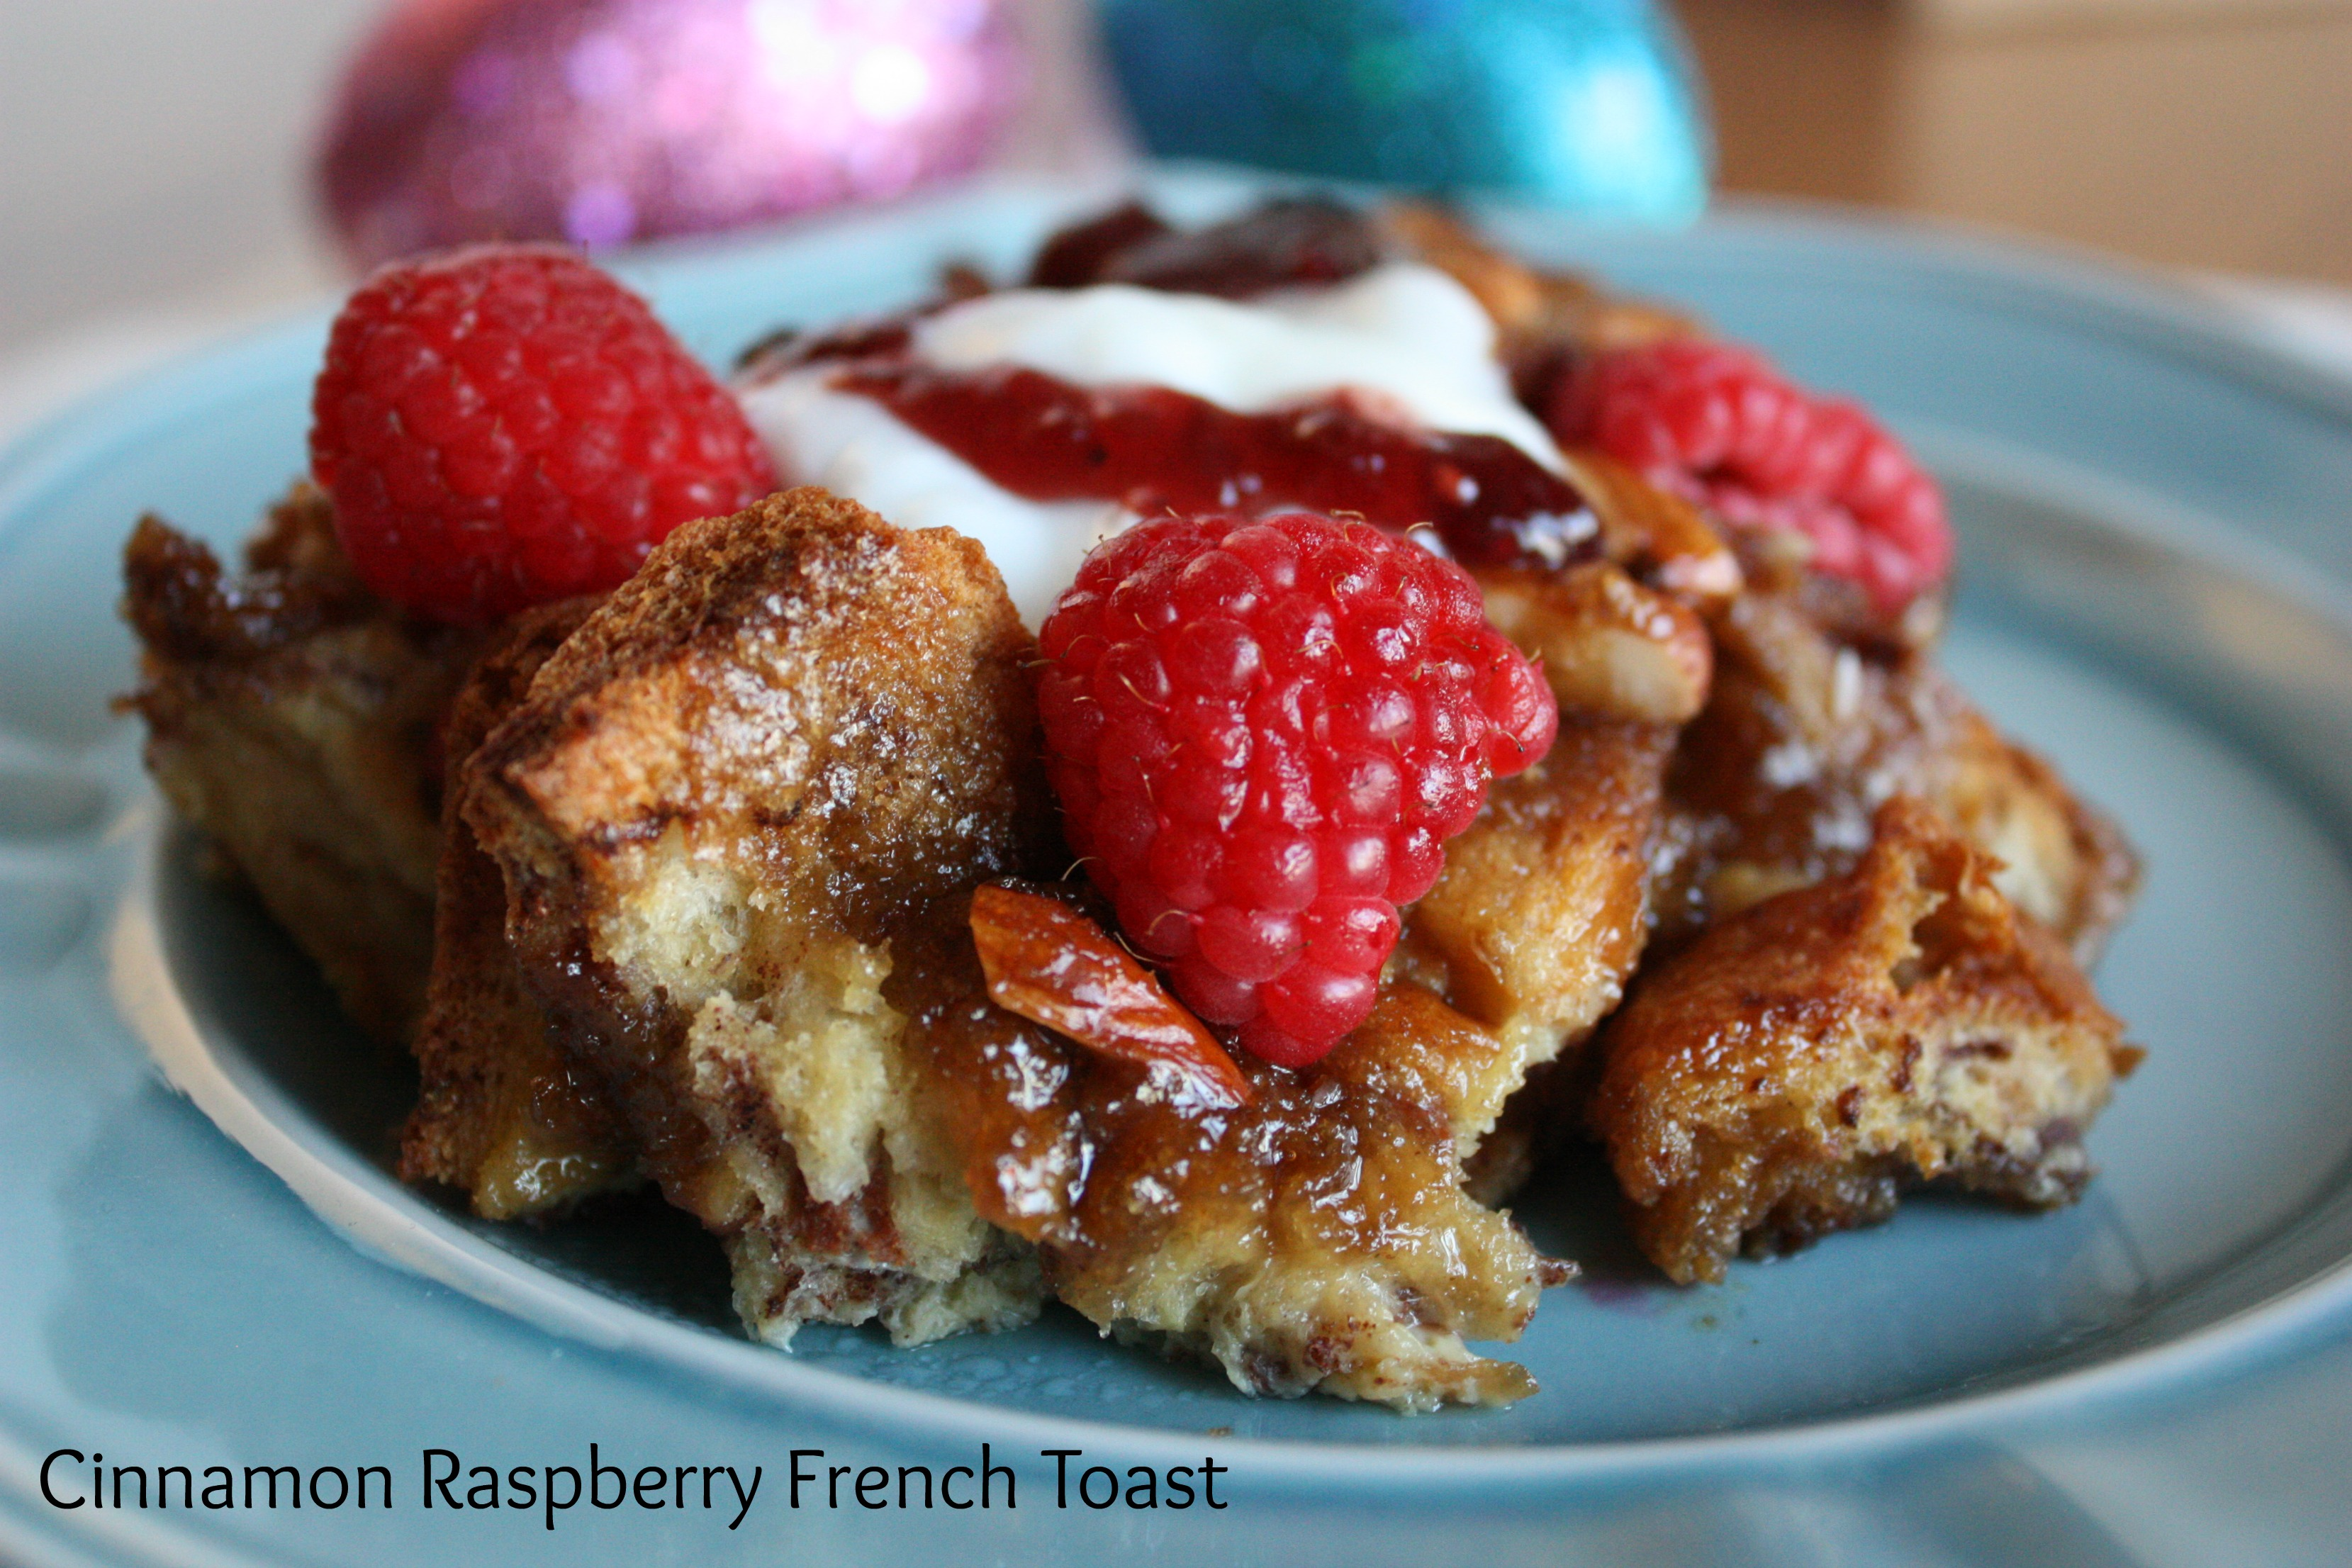 Cinnamon-Raspberry French Toast www.herviewfromhome.com